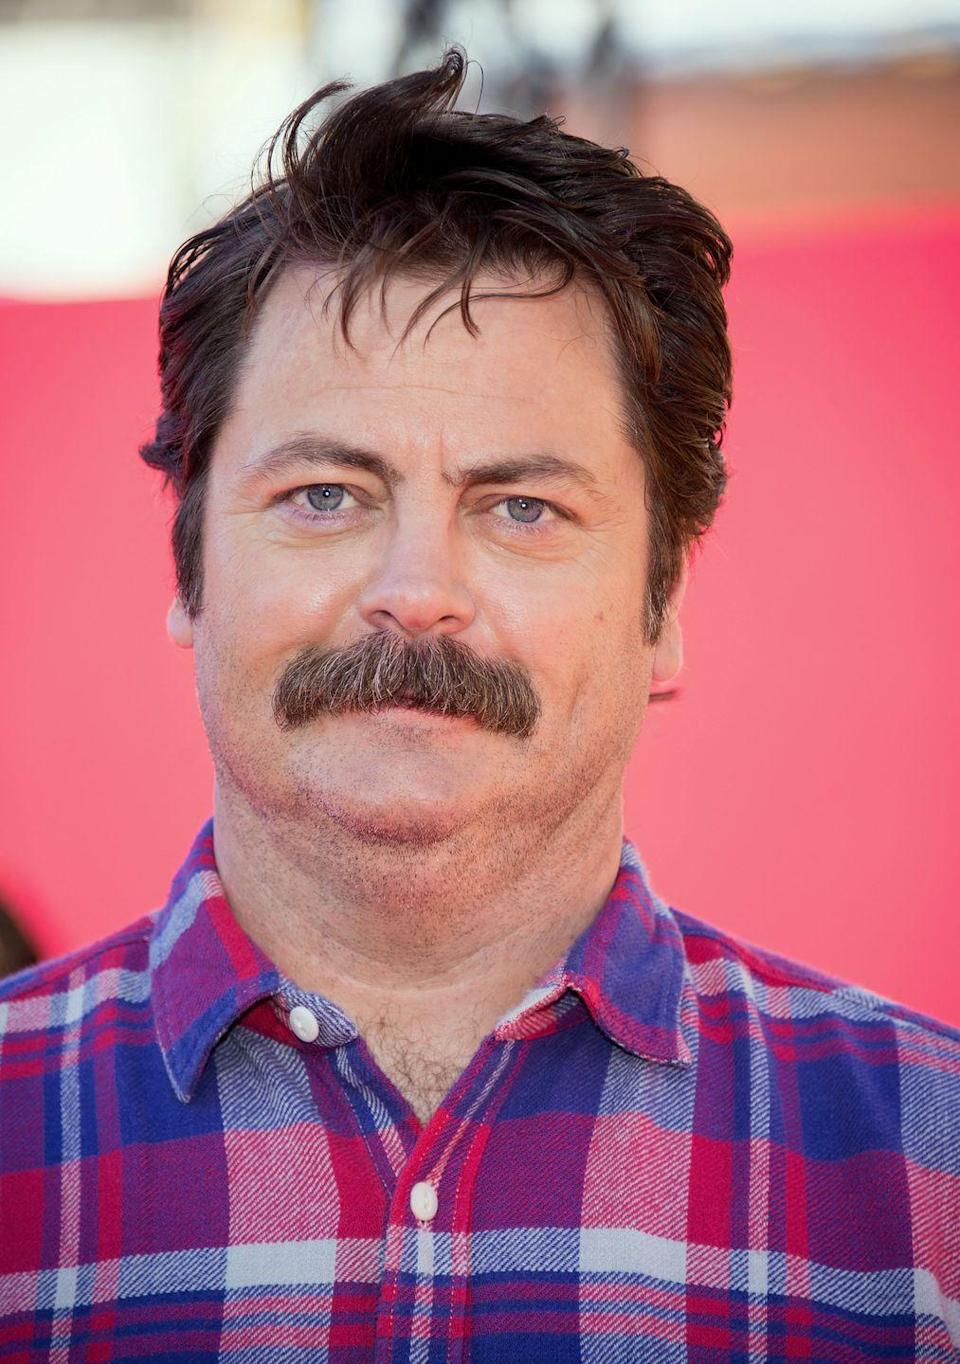 <p>NBC's <em>Parks and Recreation </em>star has cemented his place in mustache legend with his turn as the unforgettable Ron Swanson. The bristly mustache endures today, even though the show's run has ended.  </p>